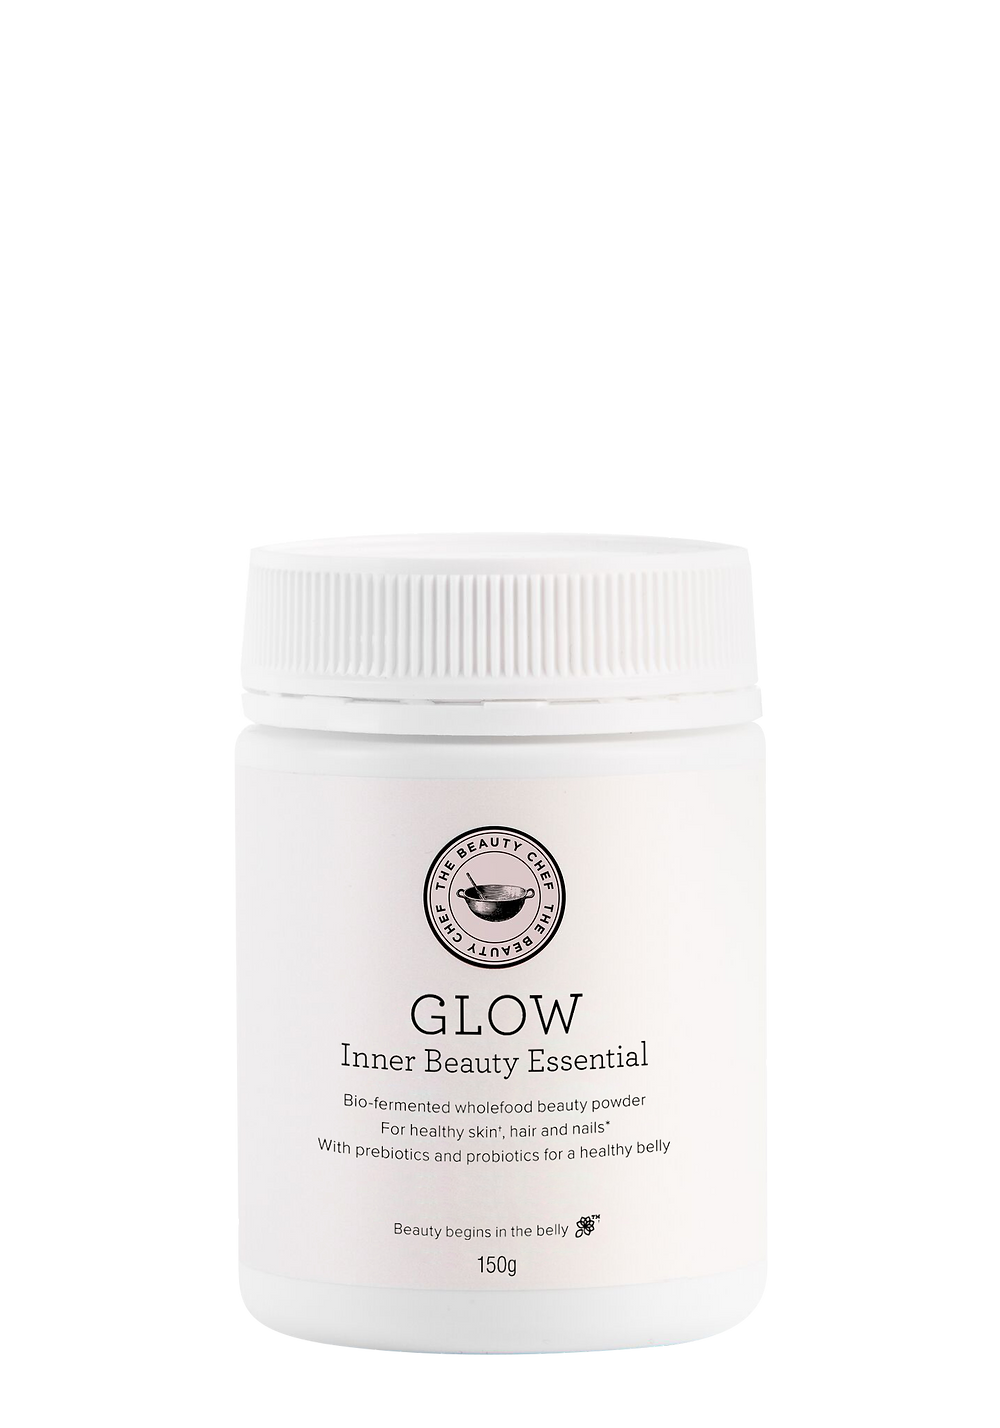 Inner Glow Beauty Powder by The Beauty Chef